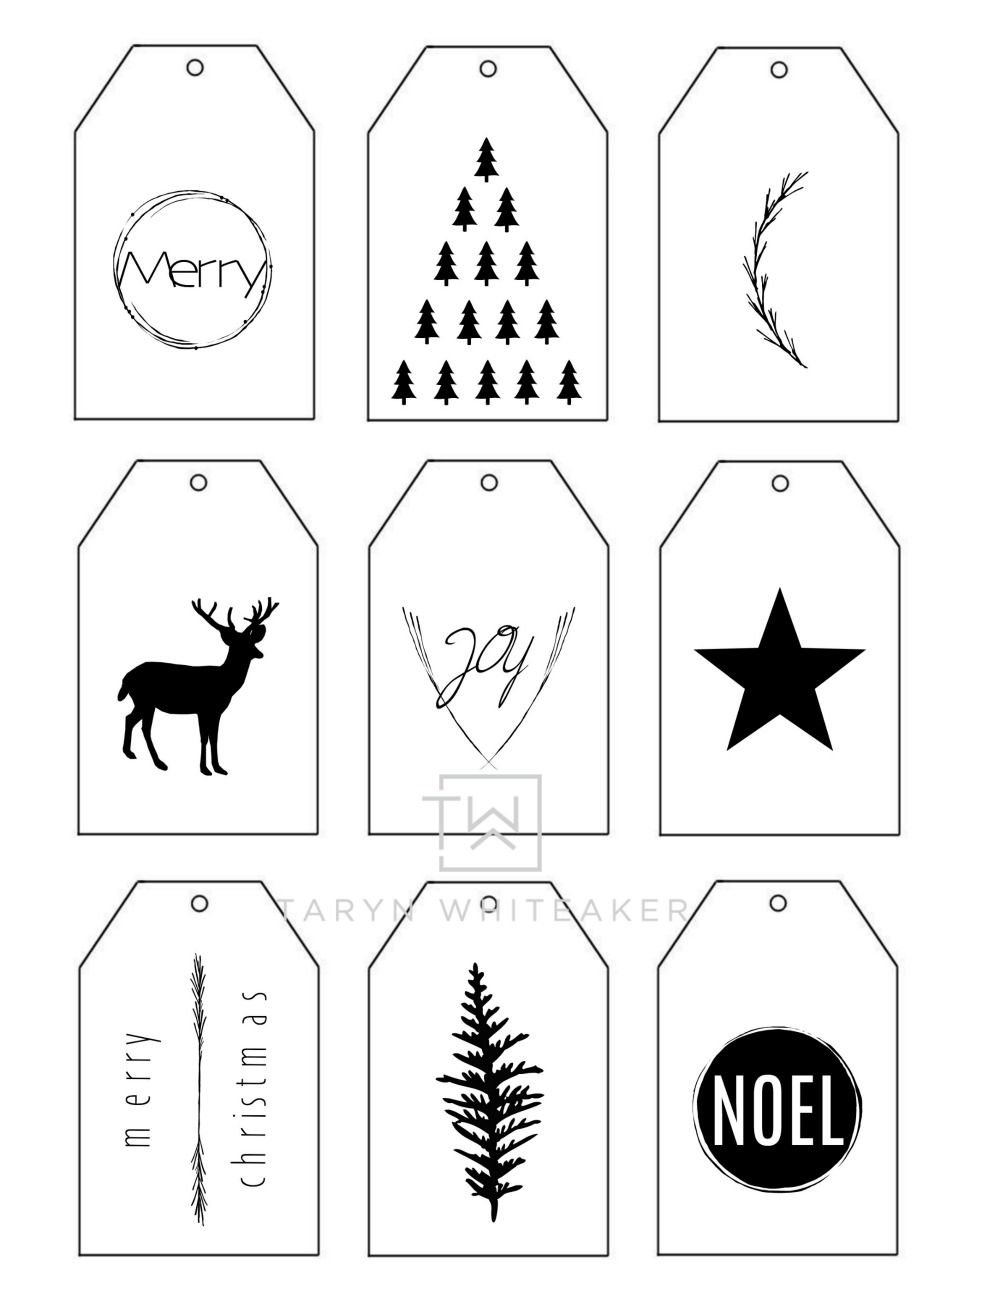 photograph about Free Printable Christmas Name Tags named Printable Xmas Present Tags - Taryn Whiteaker